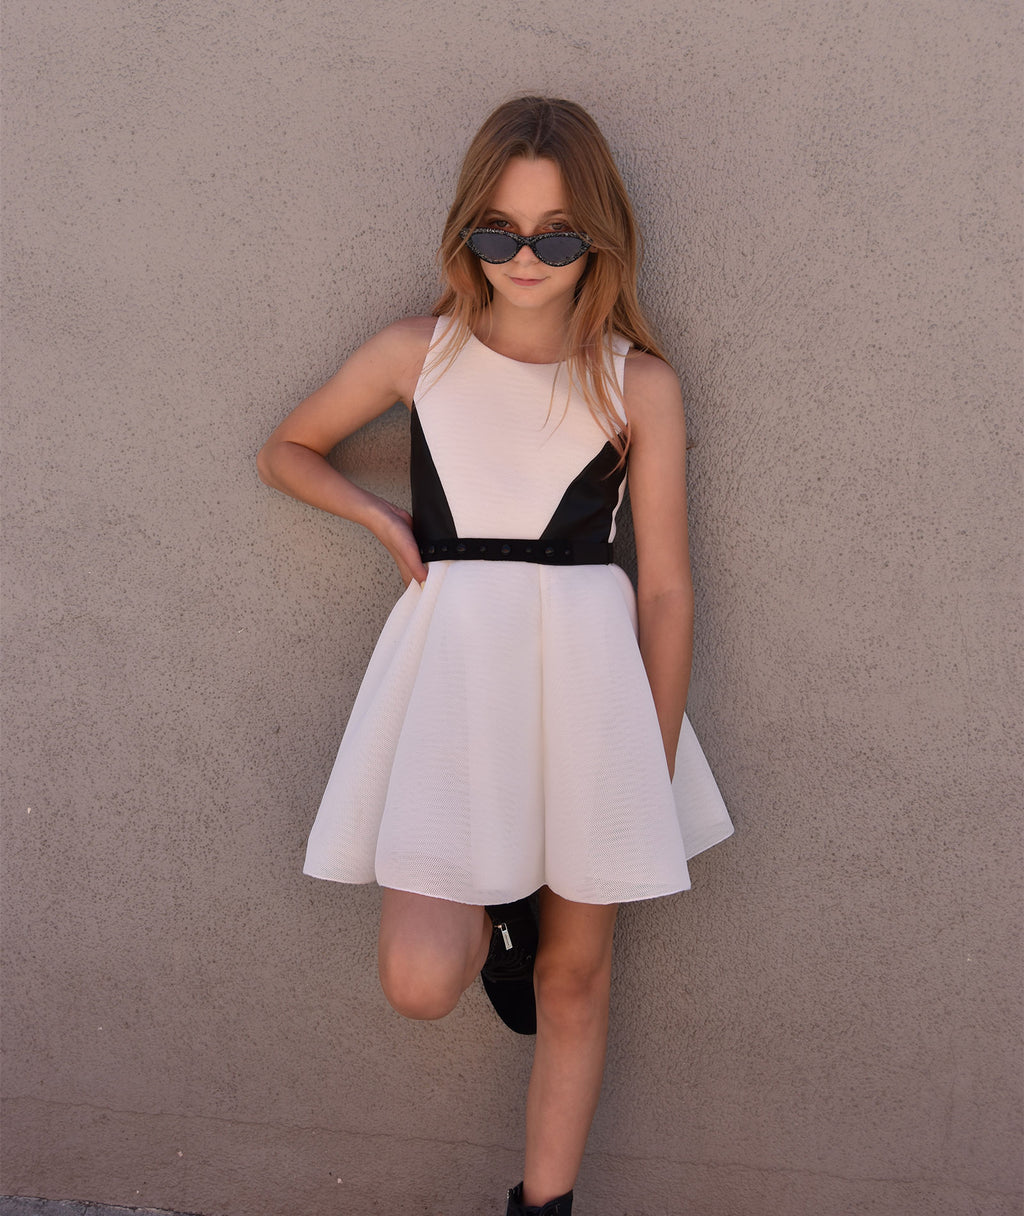 Zoe Ltd. Girls White Black Leather Dress